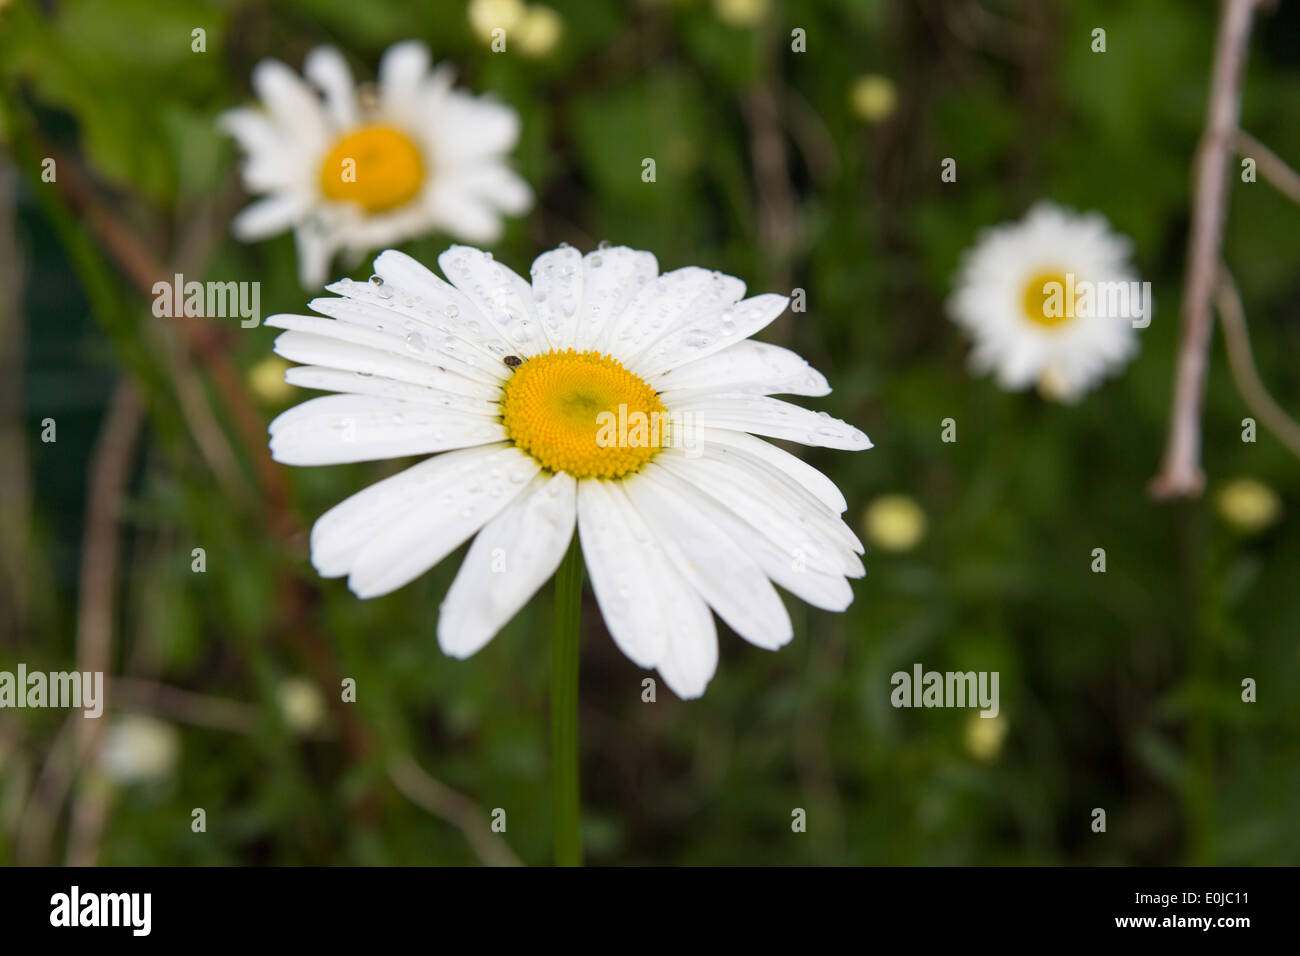 Marguerite flowers in the allotment garden - Stock Image